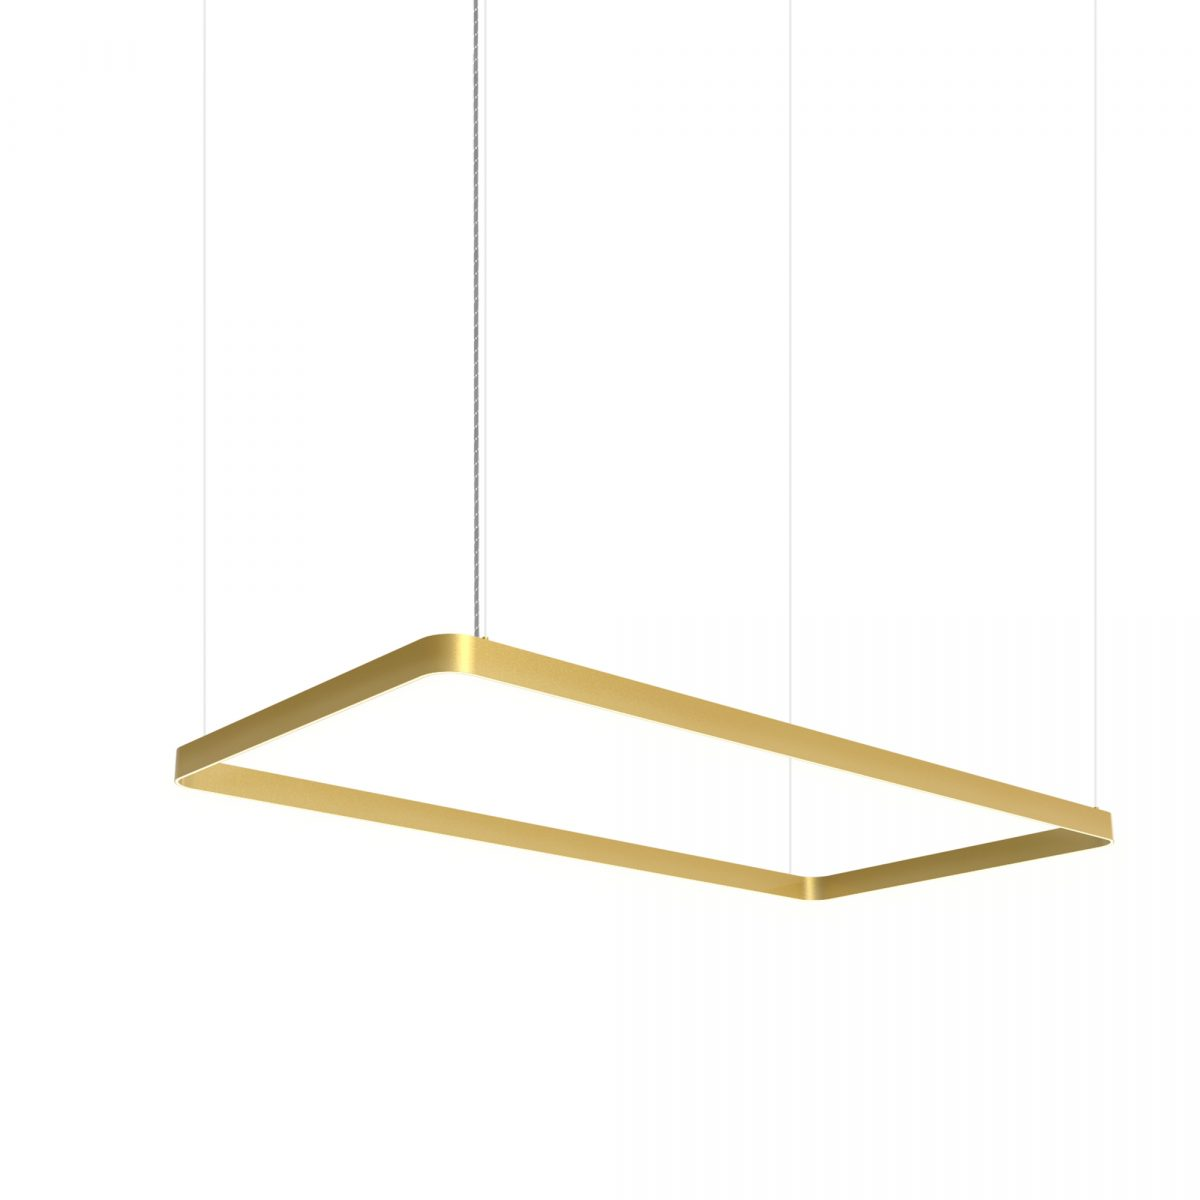 JSPR Eden 75×150 Gold Rectangle